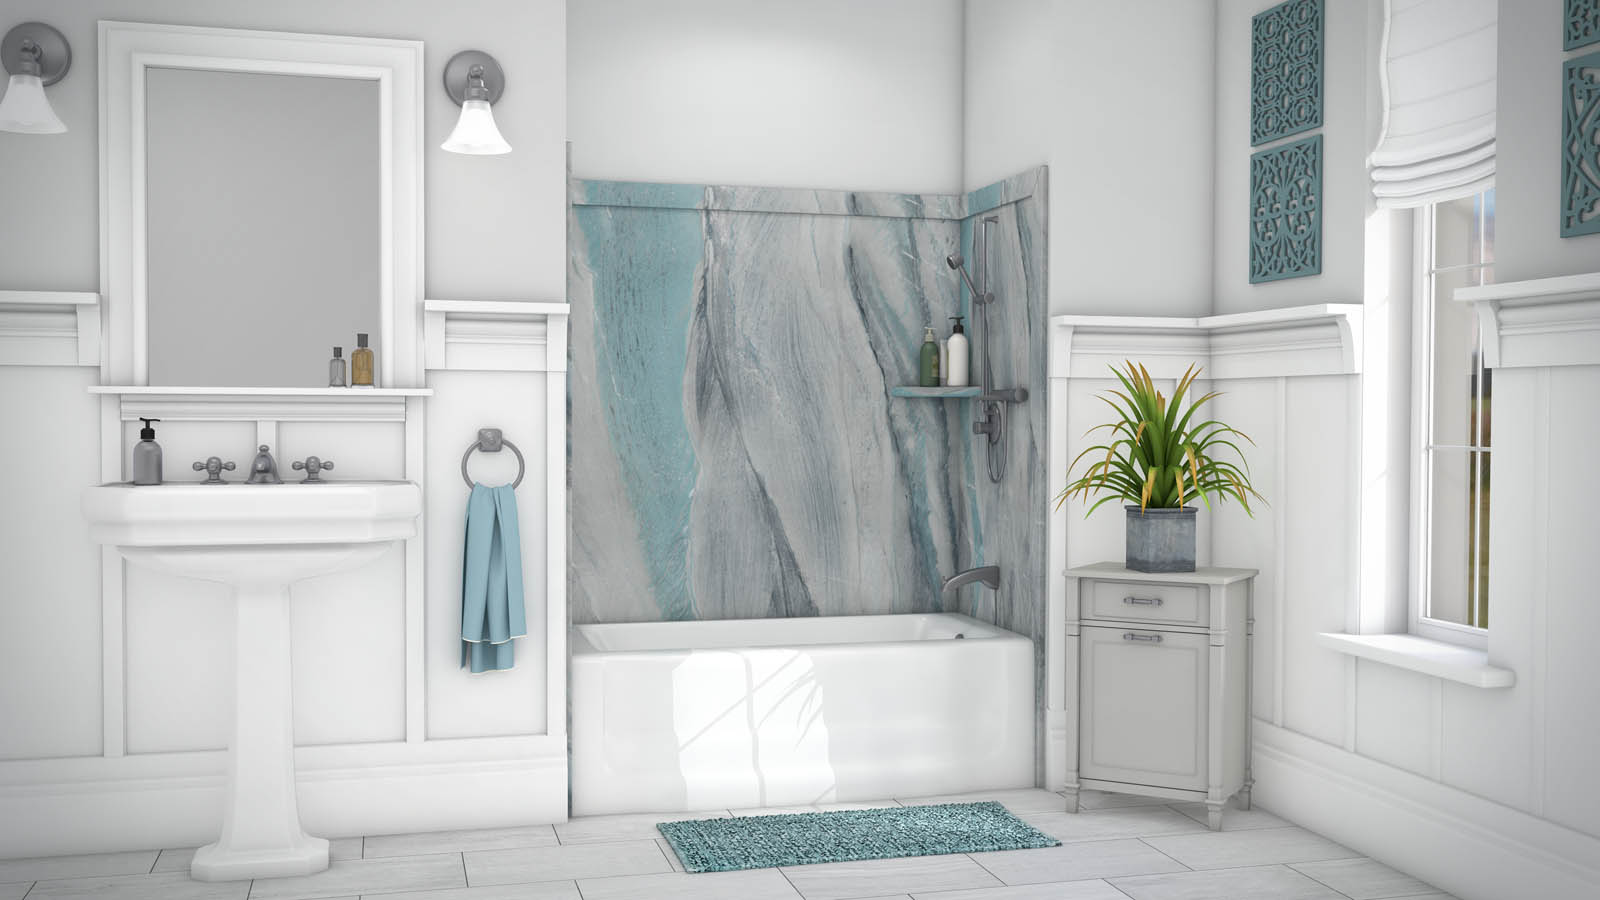 Diy Shower Tub Wall Panels Kits Innovate Building Solutions